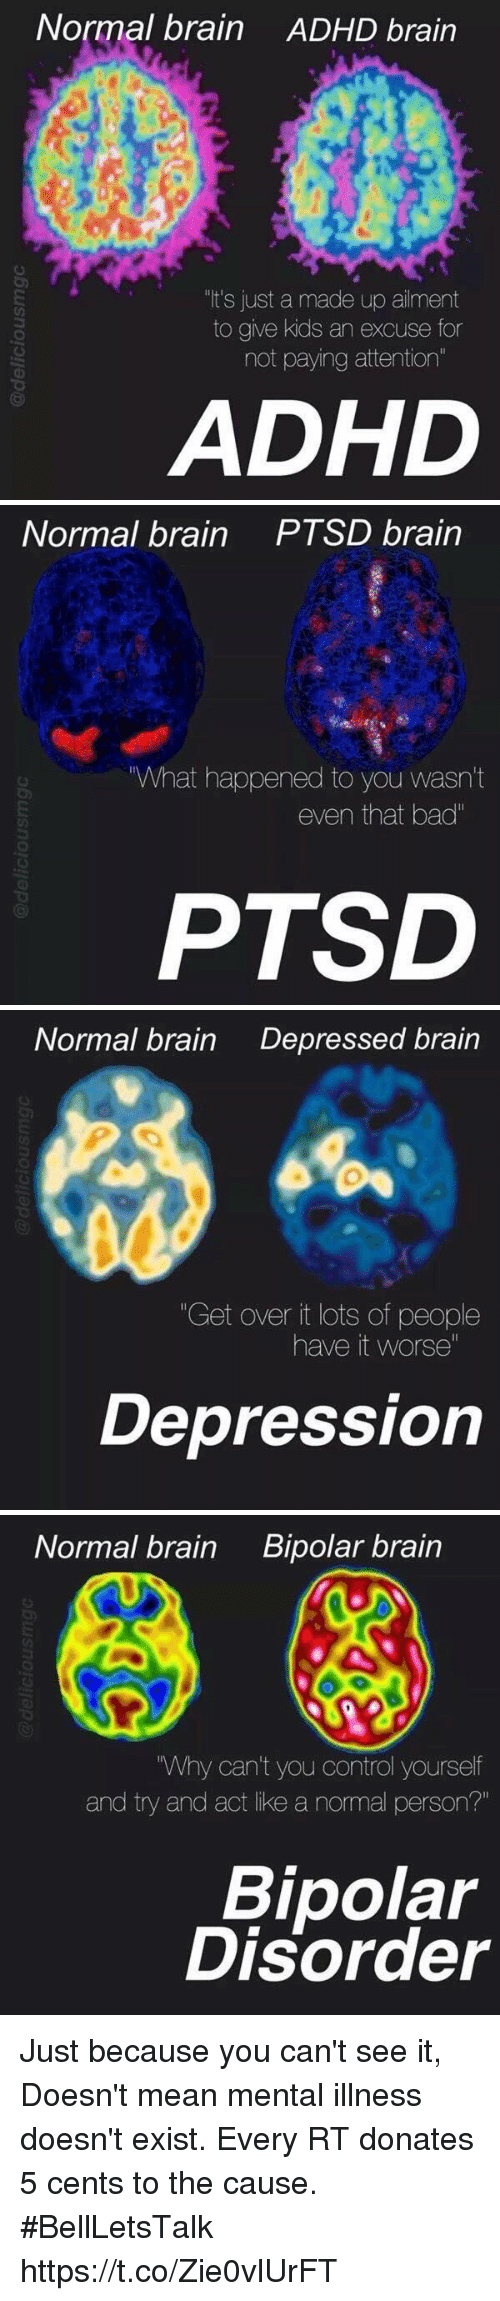 """bipolar disorder: Normal brain ADHD brain  """"It's just a made up ailment  to give kids an excuse for  not paying attention""""  ADHD   Normal brain PTSD brain  """"What happened to you wasn't  even that bad""""  PTSD   Normal brain  Depressed brain  """"Get over it lots of people  have it worse""""  Depression   Normal brain  Bipolar brain  """"Why can't you control yourself  and try and act like a normal person?""""  Bipolar  Disorder Just because you can't see it, Doesn't mean mental illness doesn't exist. Every RT donates 5 cents to the cause. #BellLetsTalk https://t.co/Zie0vlUrFT"""